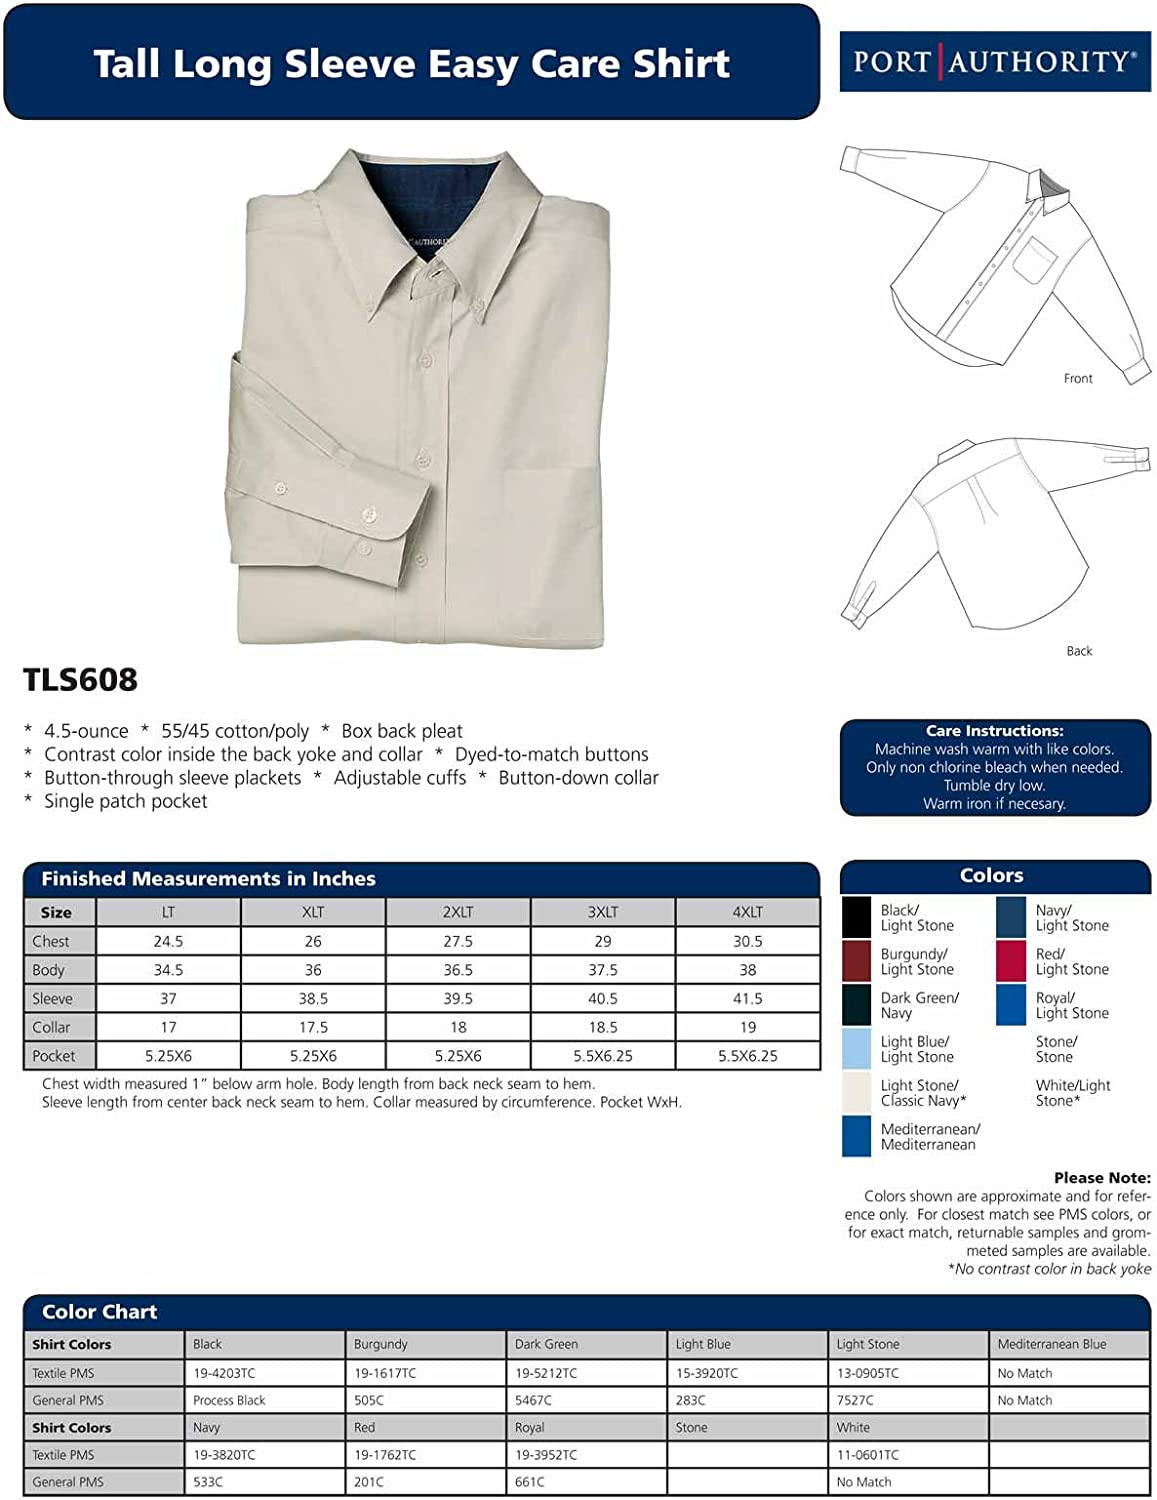 Port Authority - Tall Long Sleeve Easy Care Shirt. >> XLT,Red/Light Stone